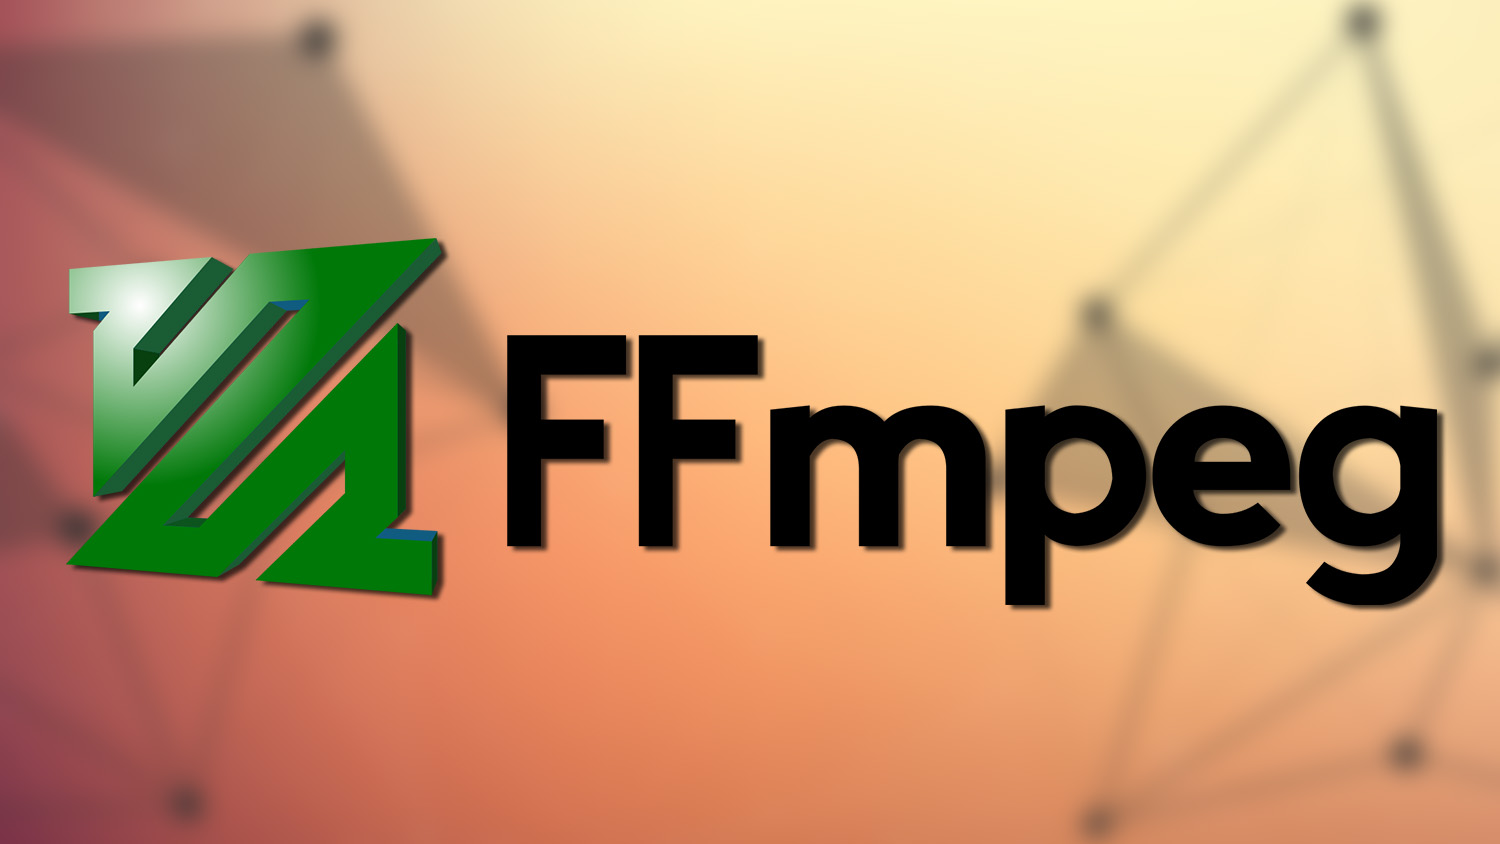 How to Install FFmpeg on Windows 10 & Add FFmpeg to Windows Path